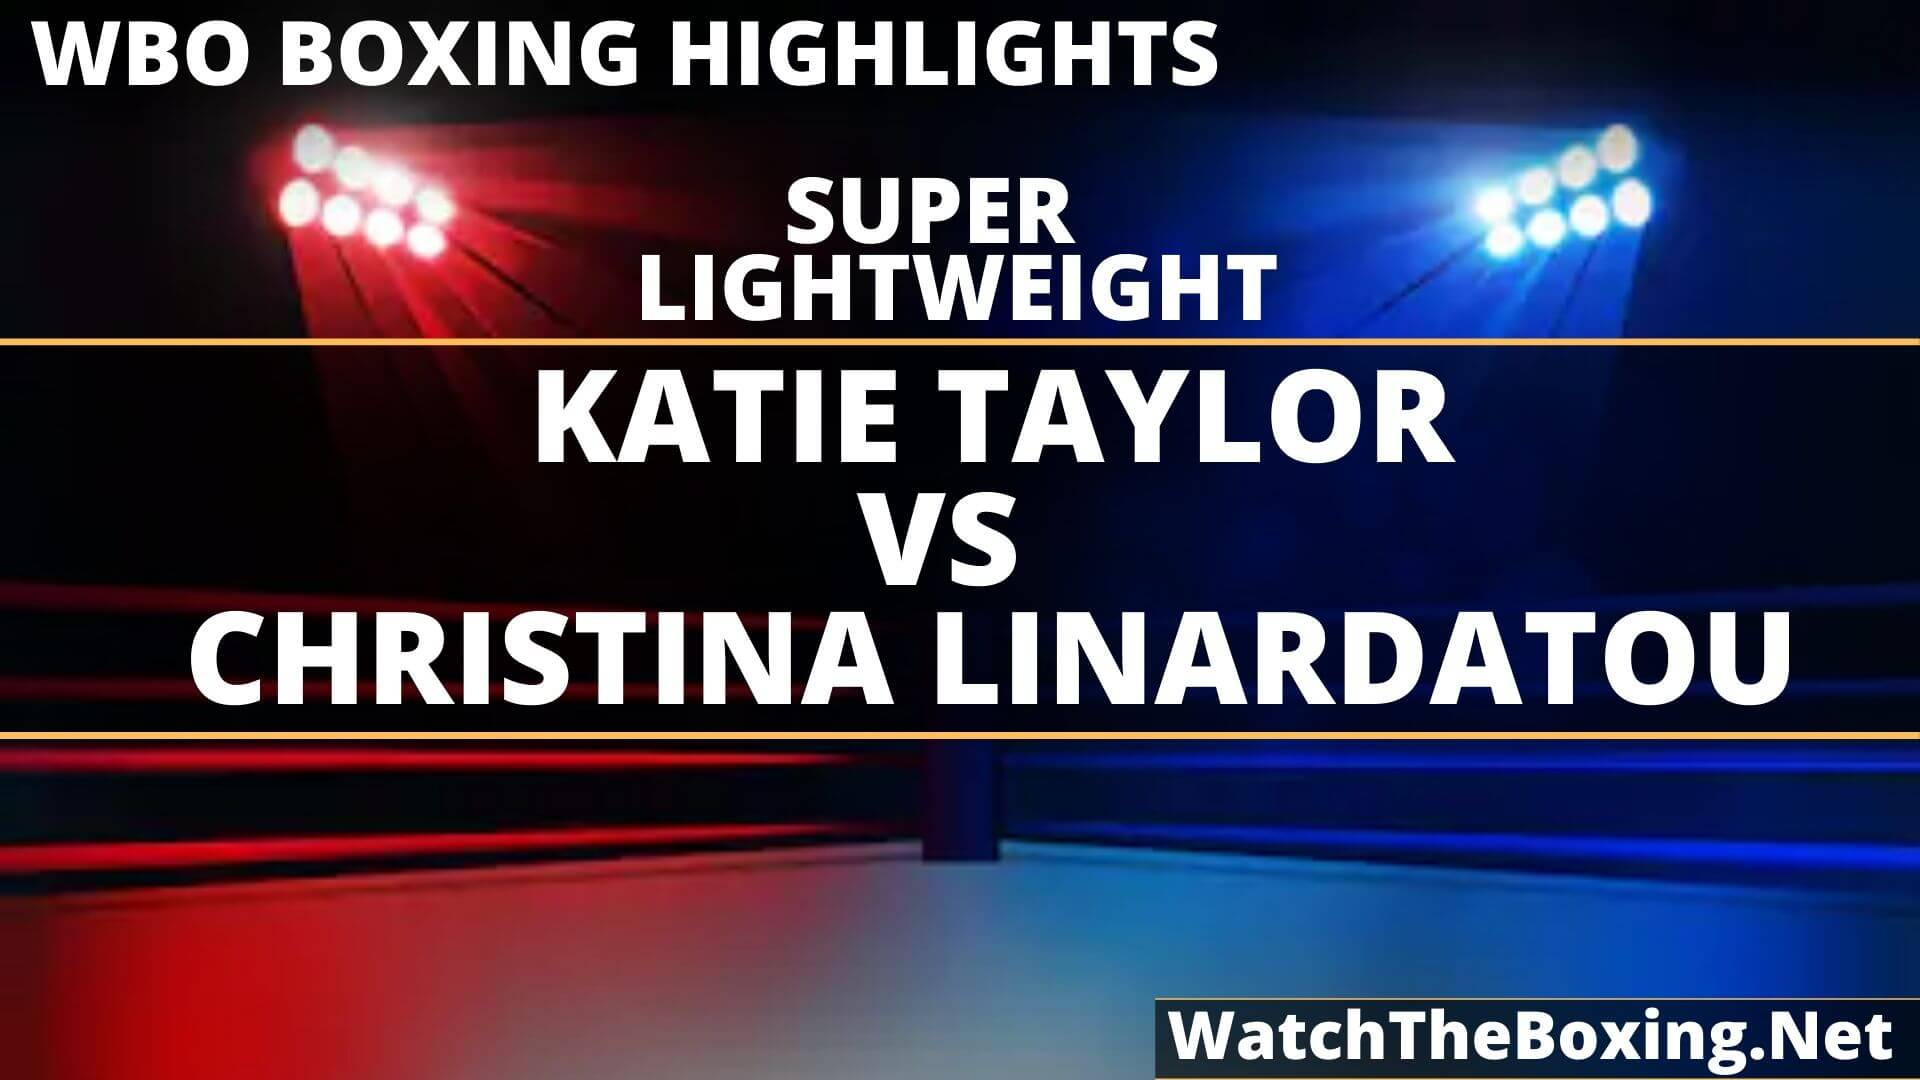 Katie Taylor Vs Christina Linardatou Highlights 2019